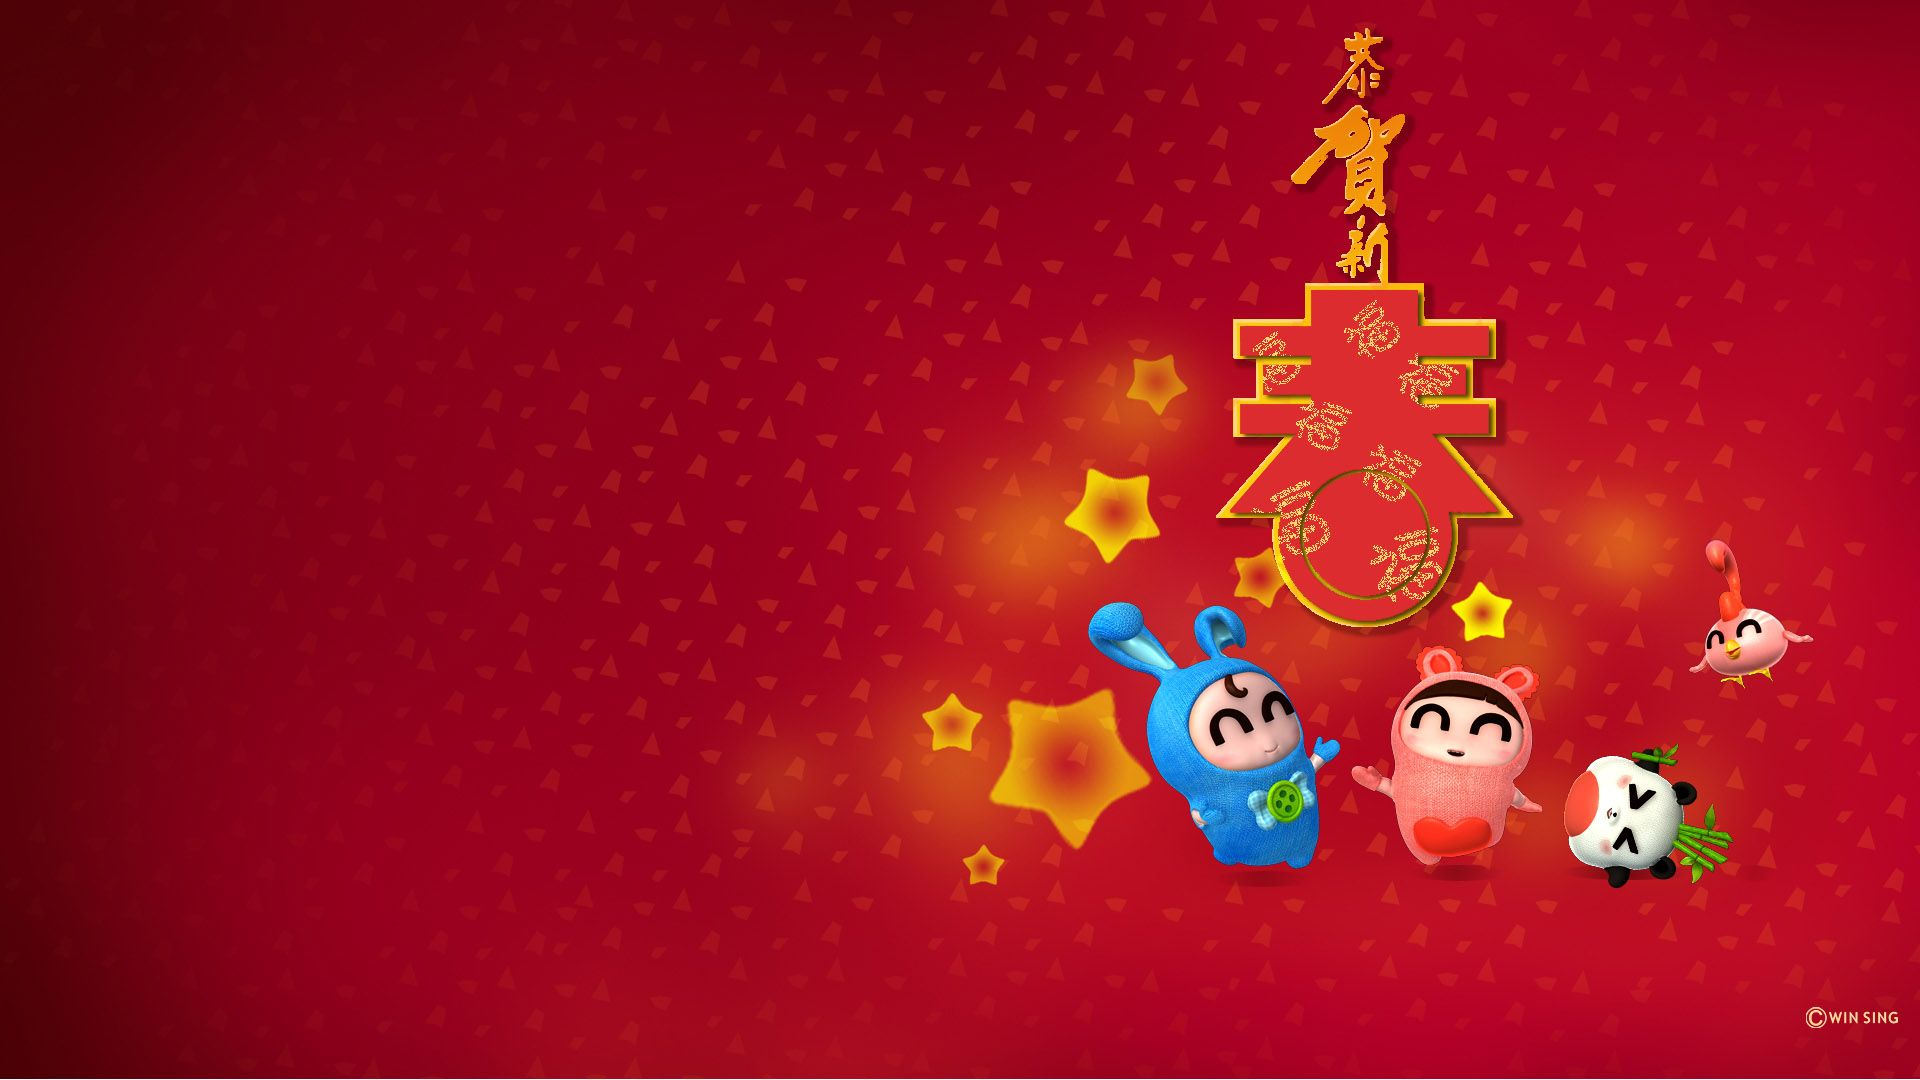 chinese new year 2014 free desktop wallpapers - wallpaper, high